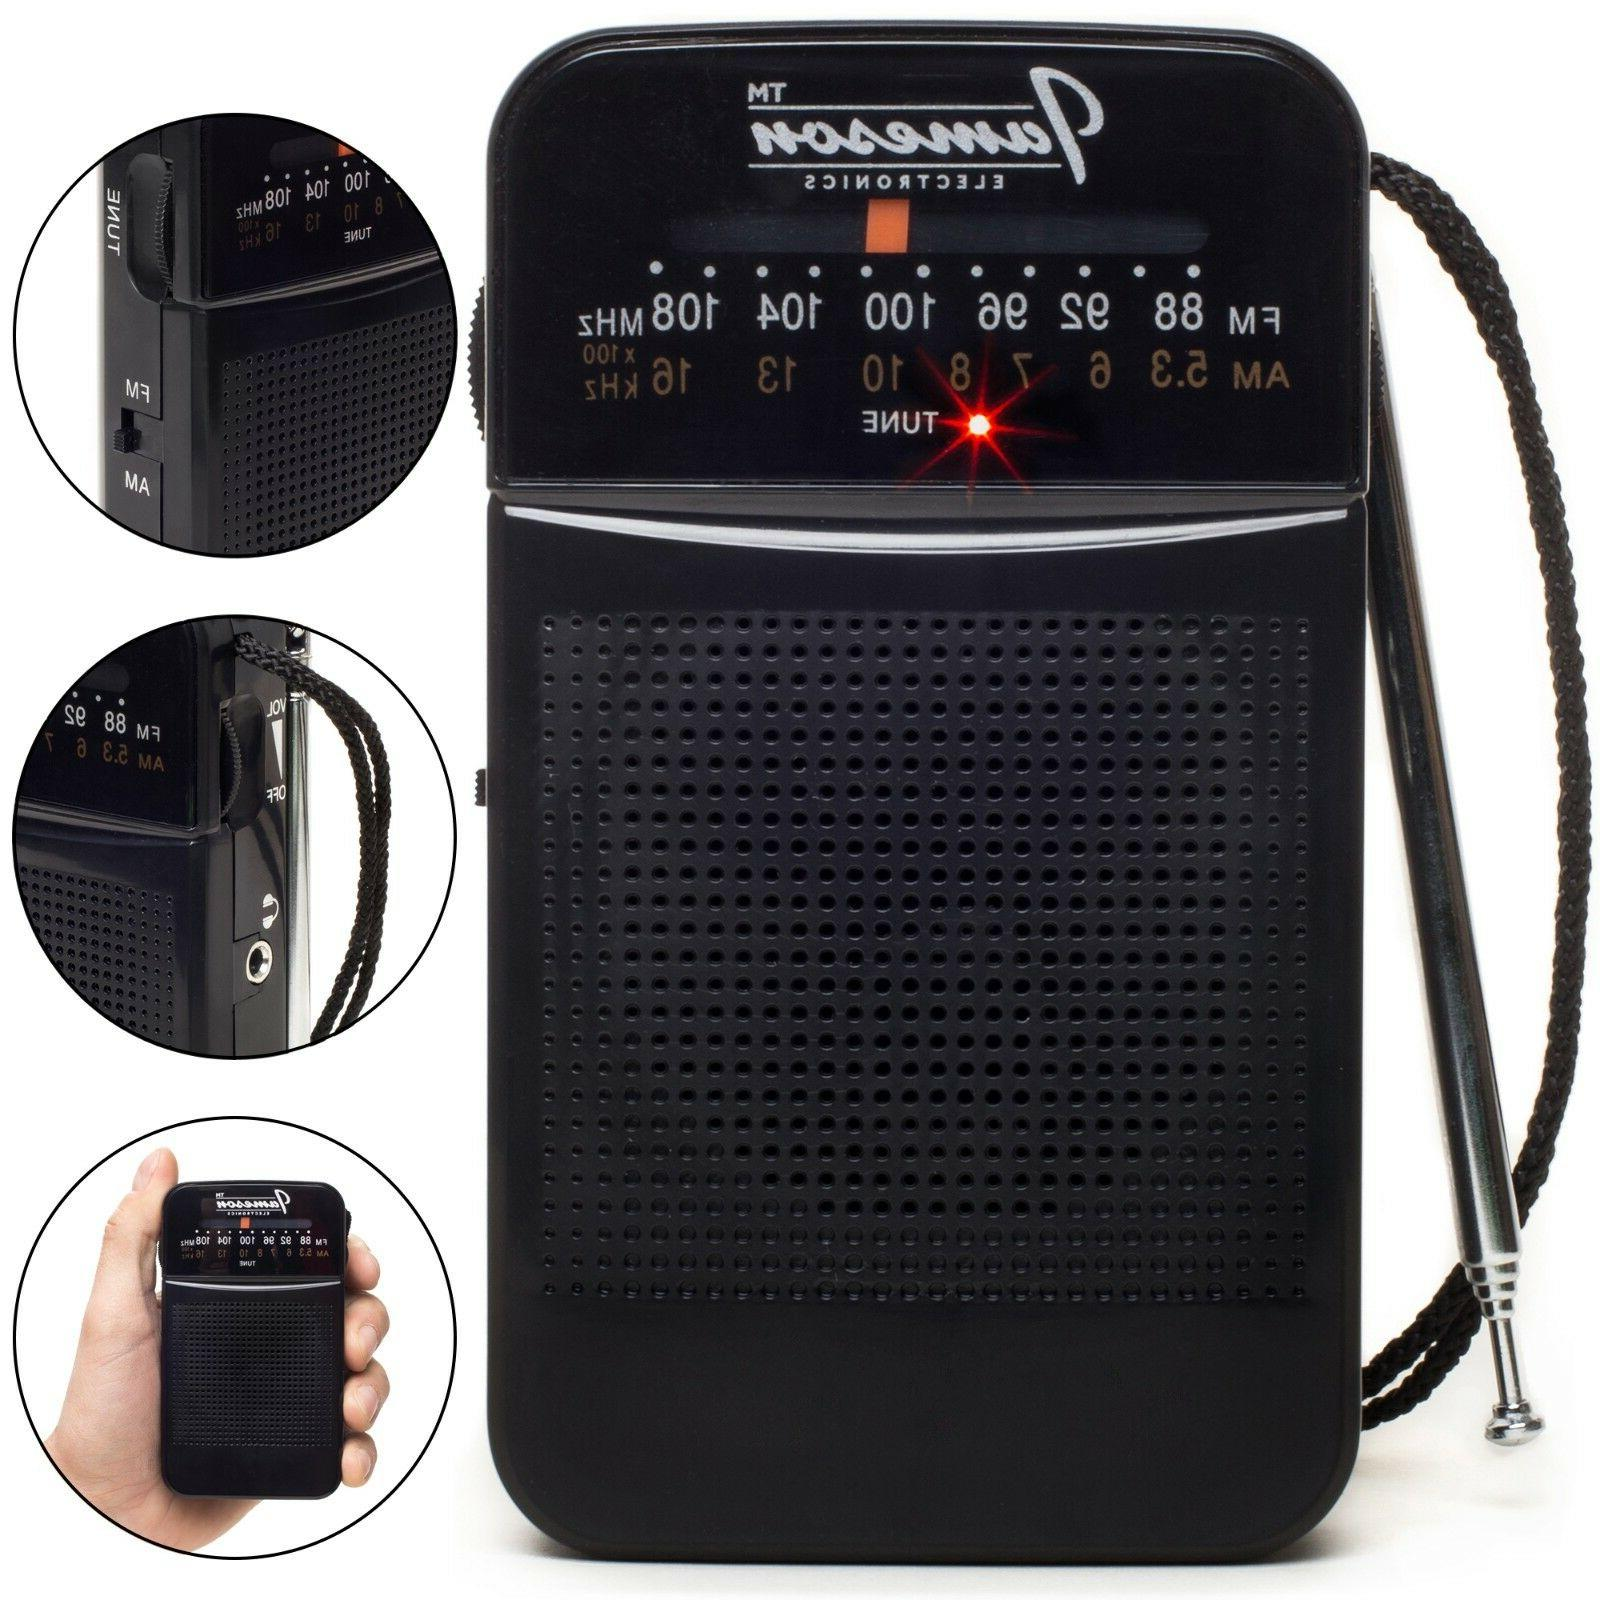 AM Personal Radios // FM Portable Pocket With Best Reception